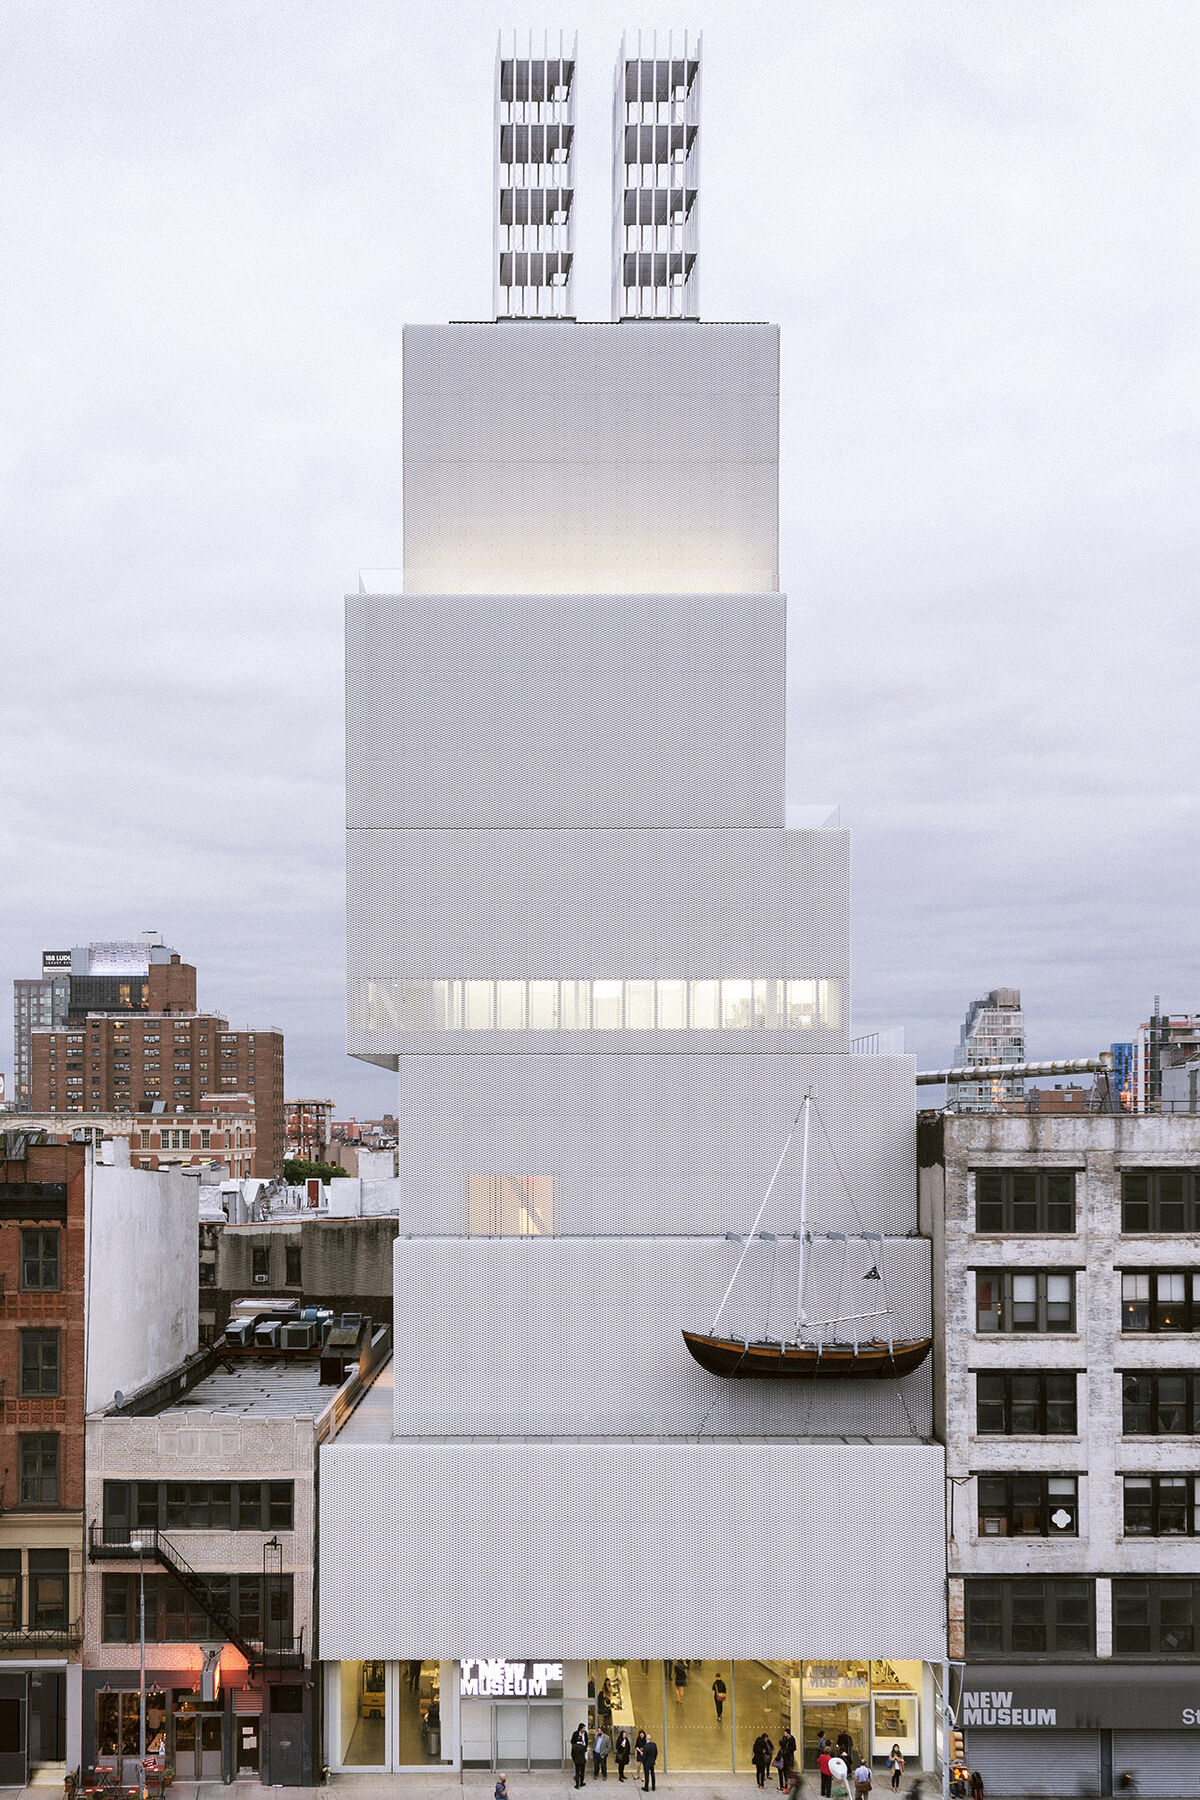 The New Museum, New York. Image courtesy of the New Museum.